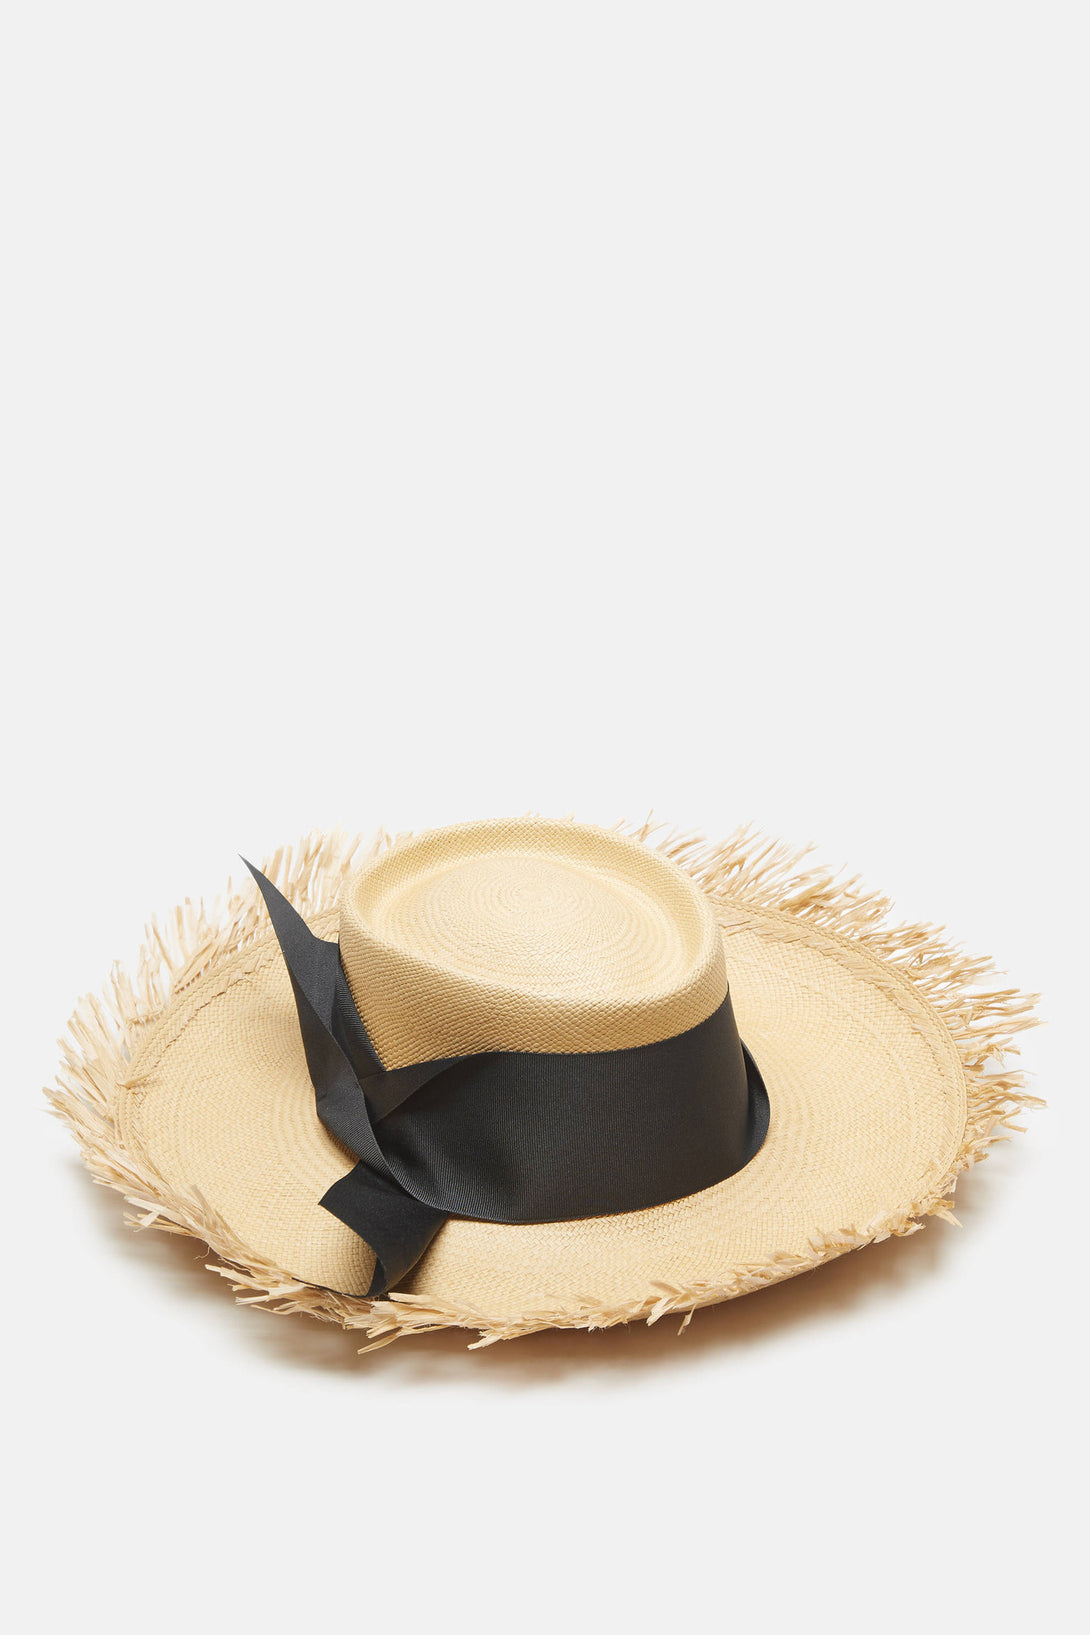 Dumont Long Brim Hat with Frayed Brim - Beige/Black